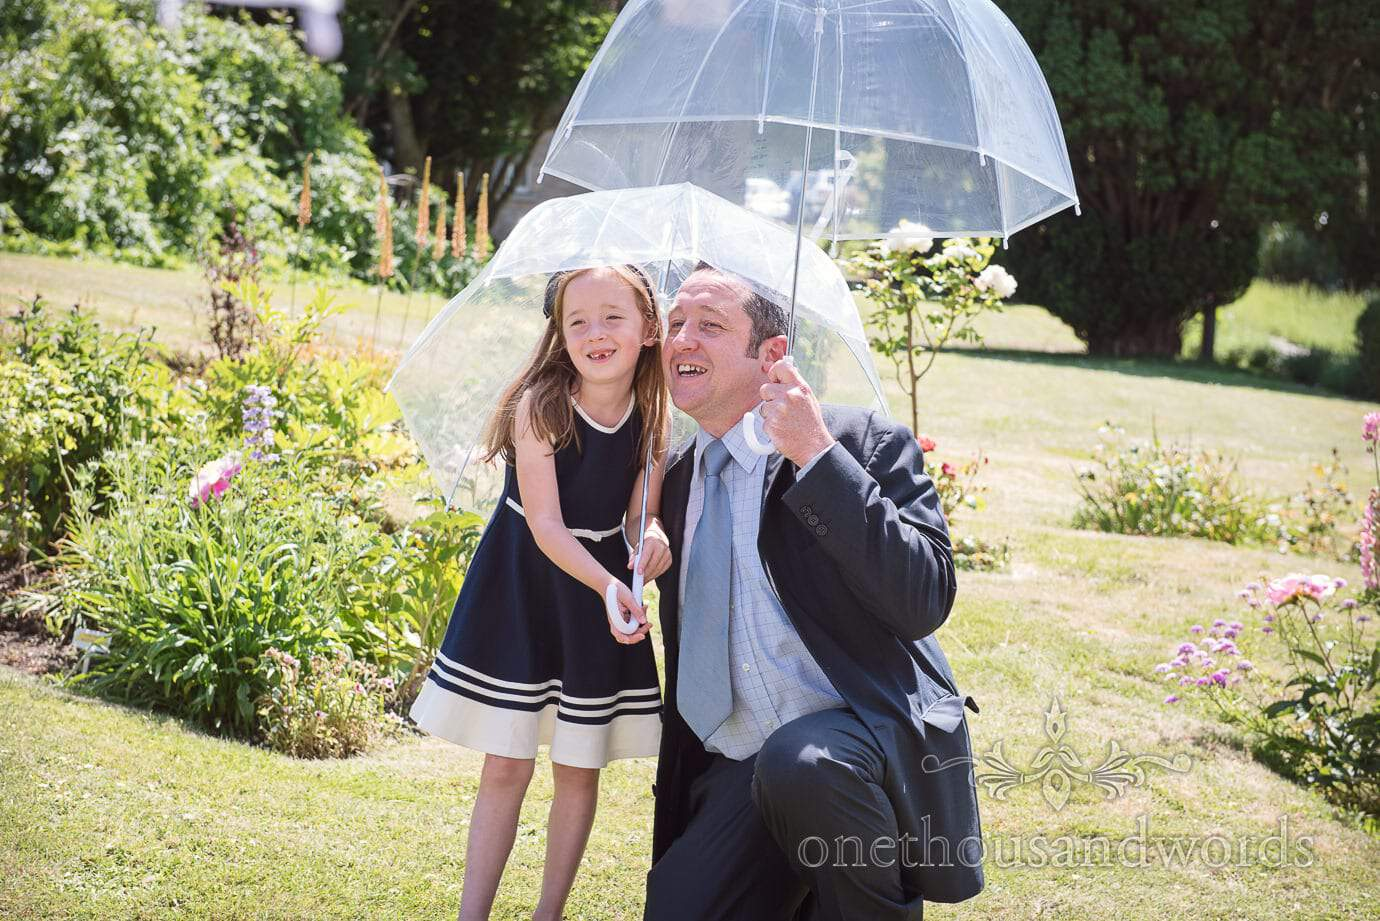 Wedding guests under see through umbrellas in the gardens at Purbeck House Hotel wedding